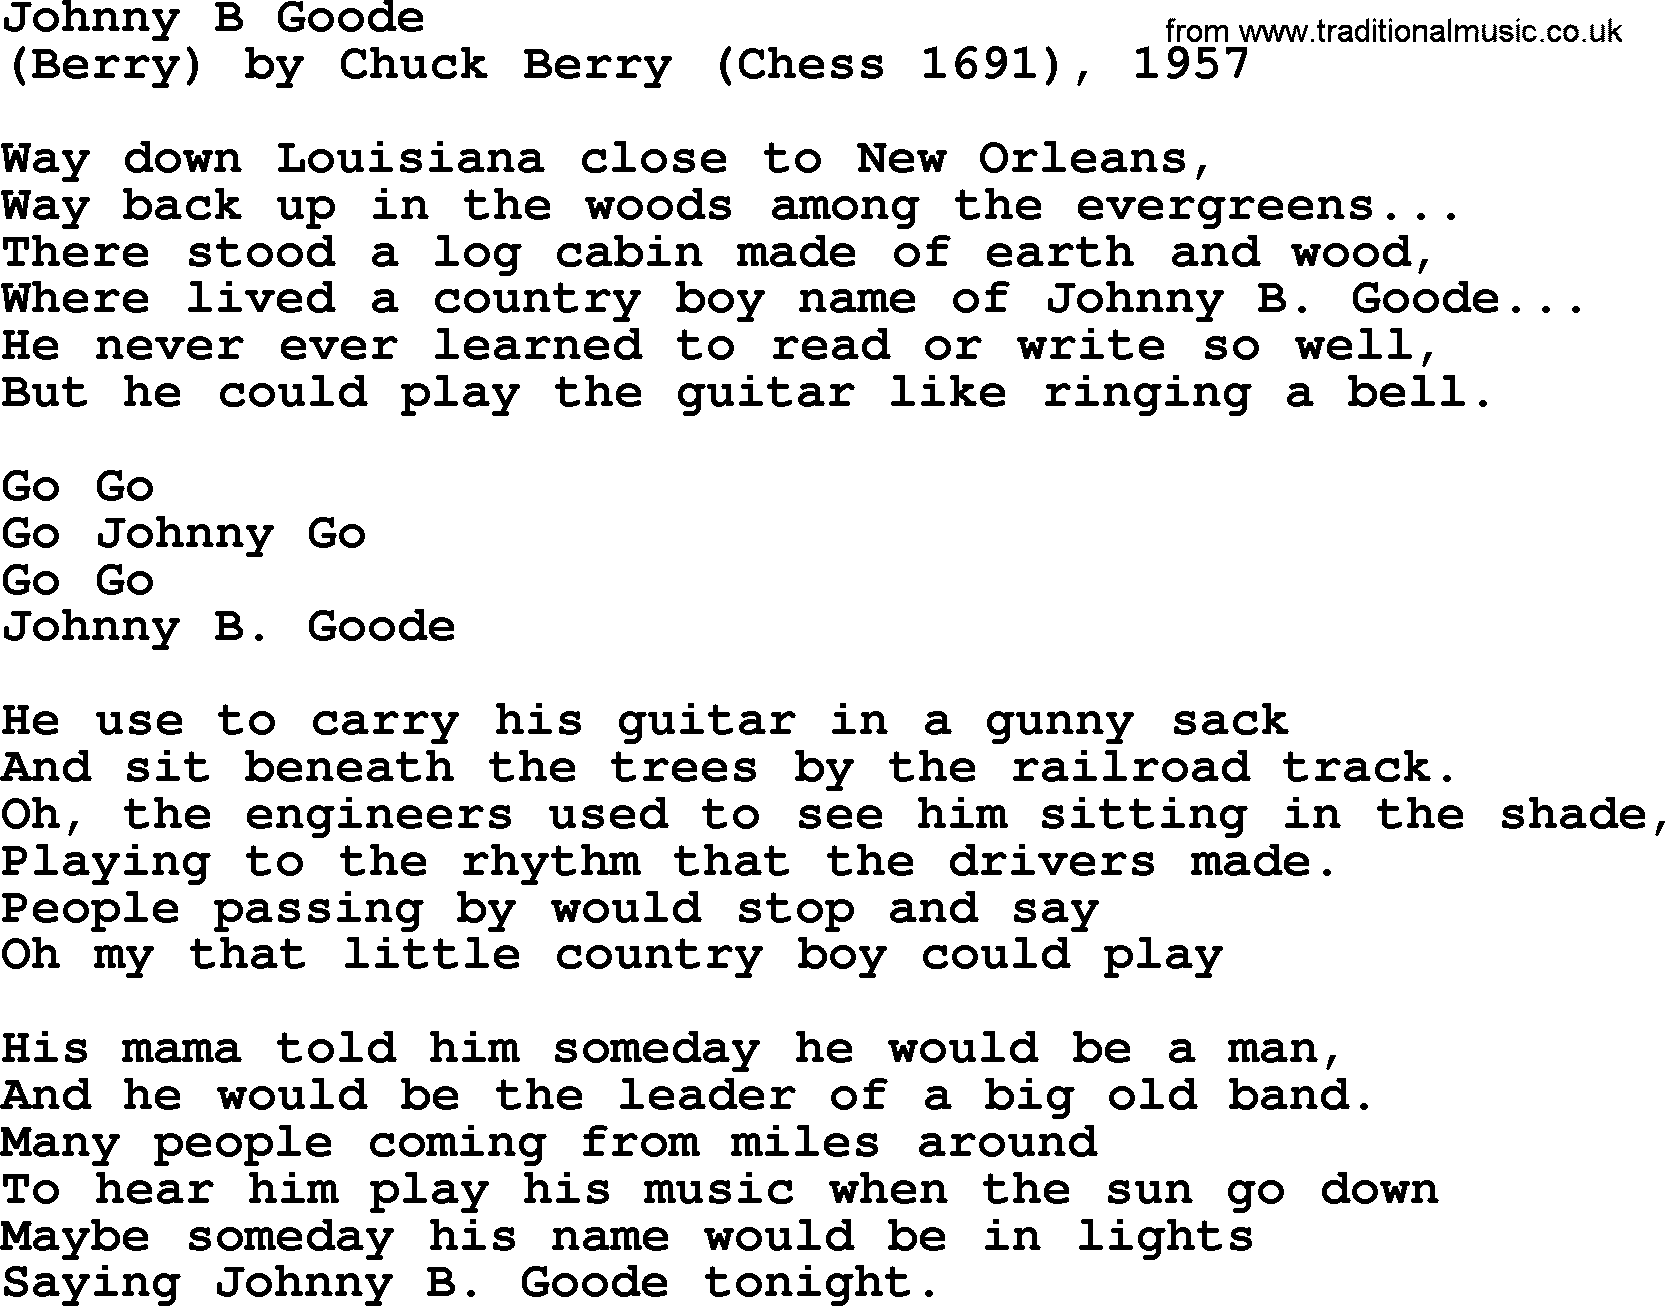 Chuck Berry - Johnny B. Goode Lyrics | MetroLyrics